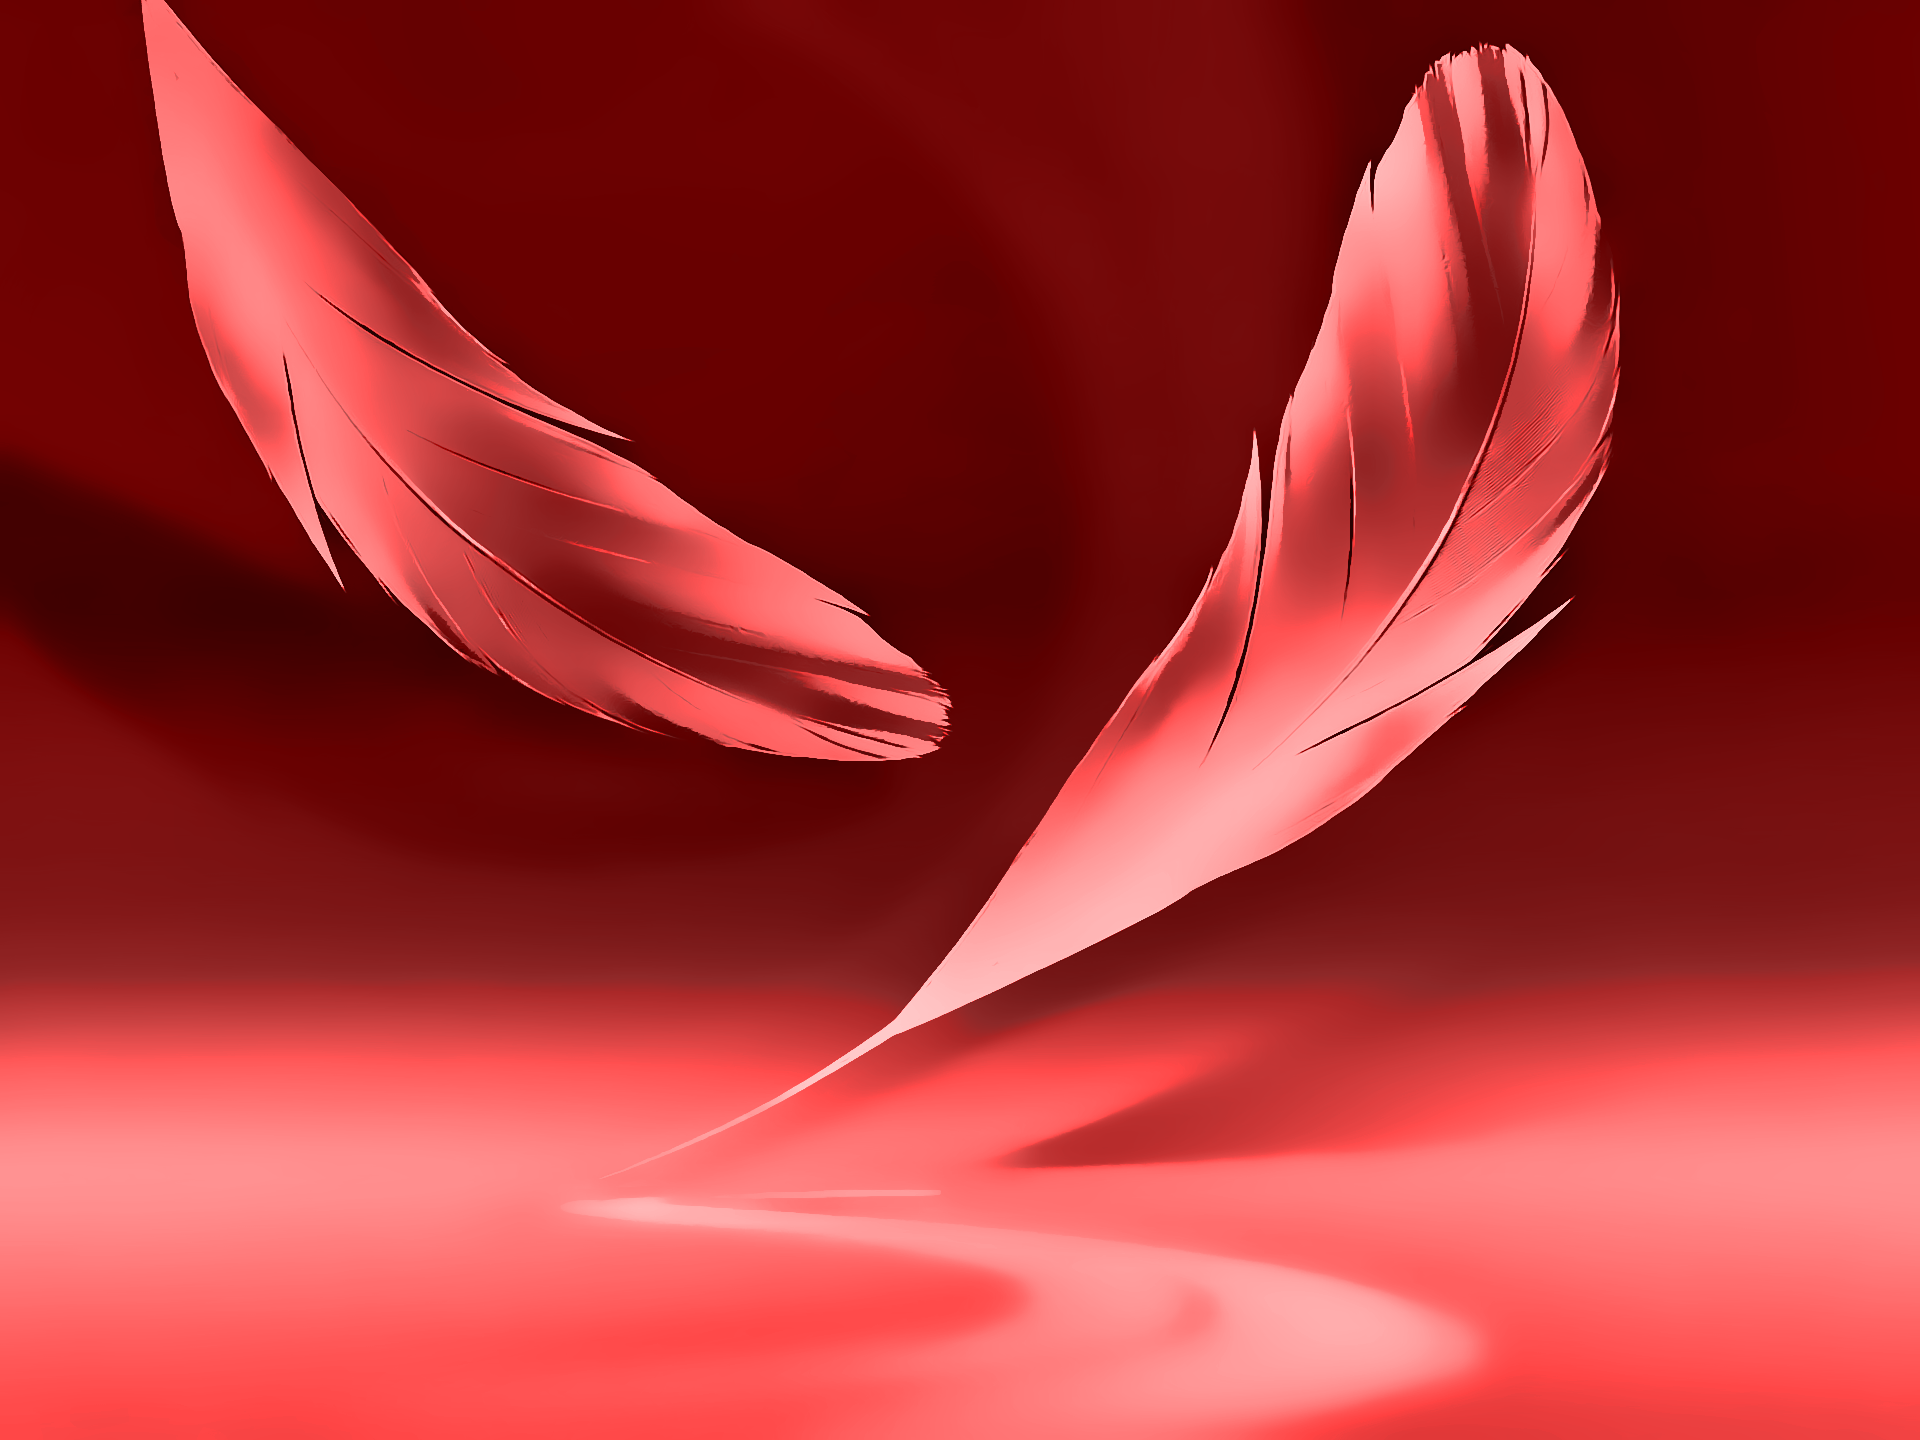 Galaxy Note 2 Wallpaper Hd Red Version By Kingwicked On Deviantart